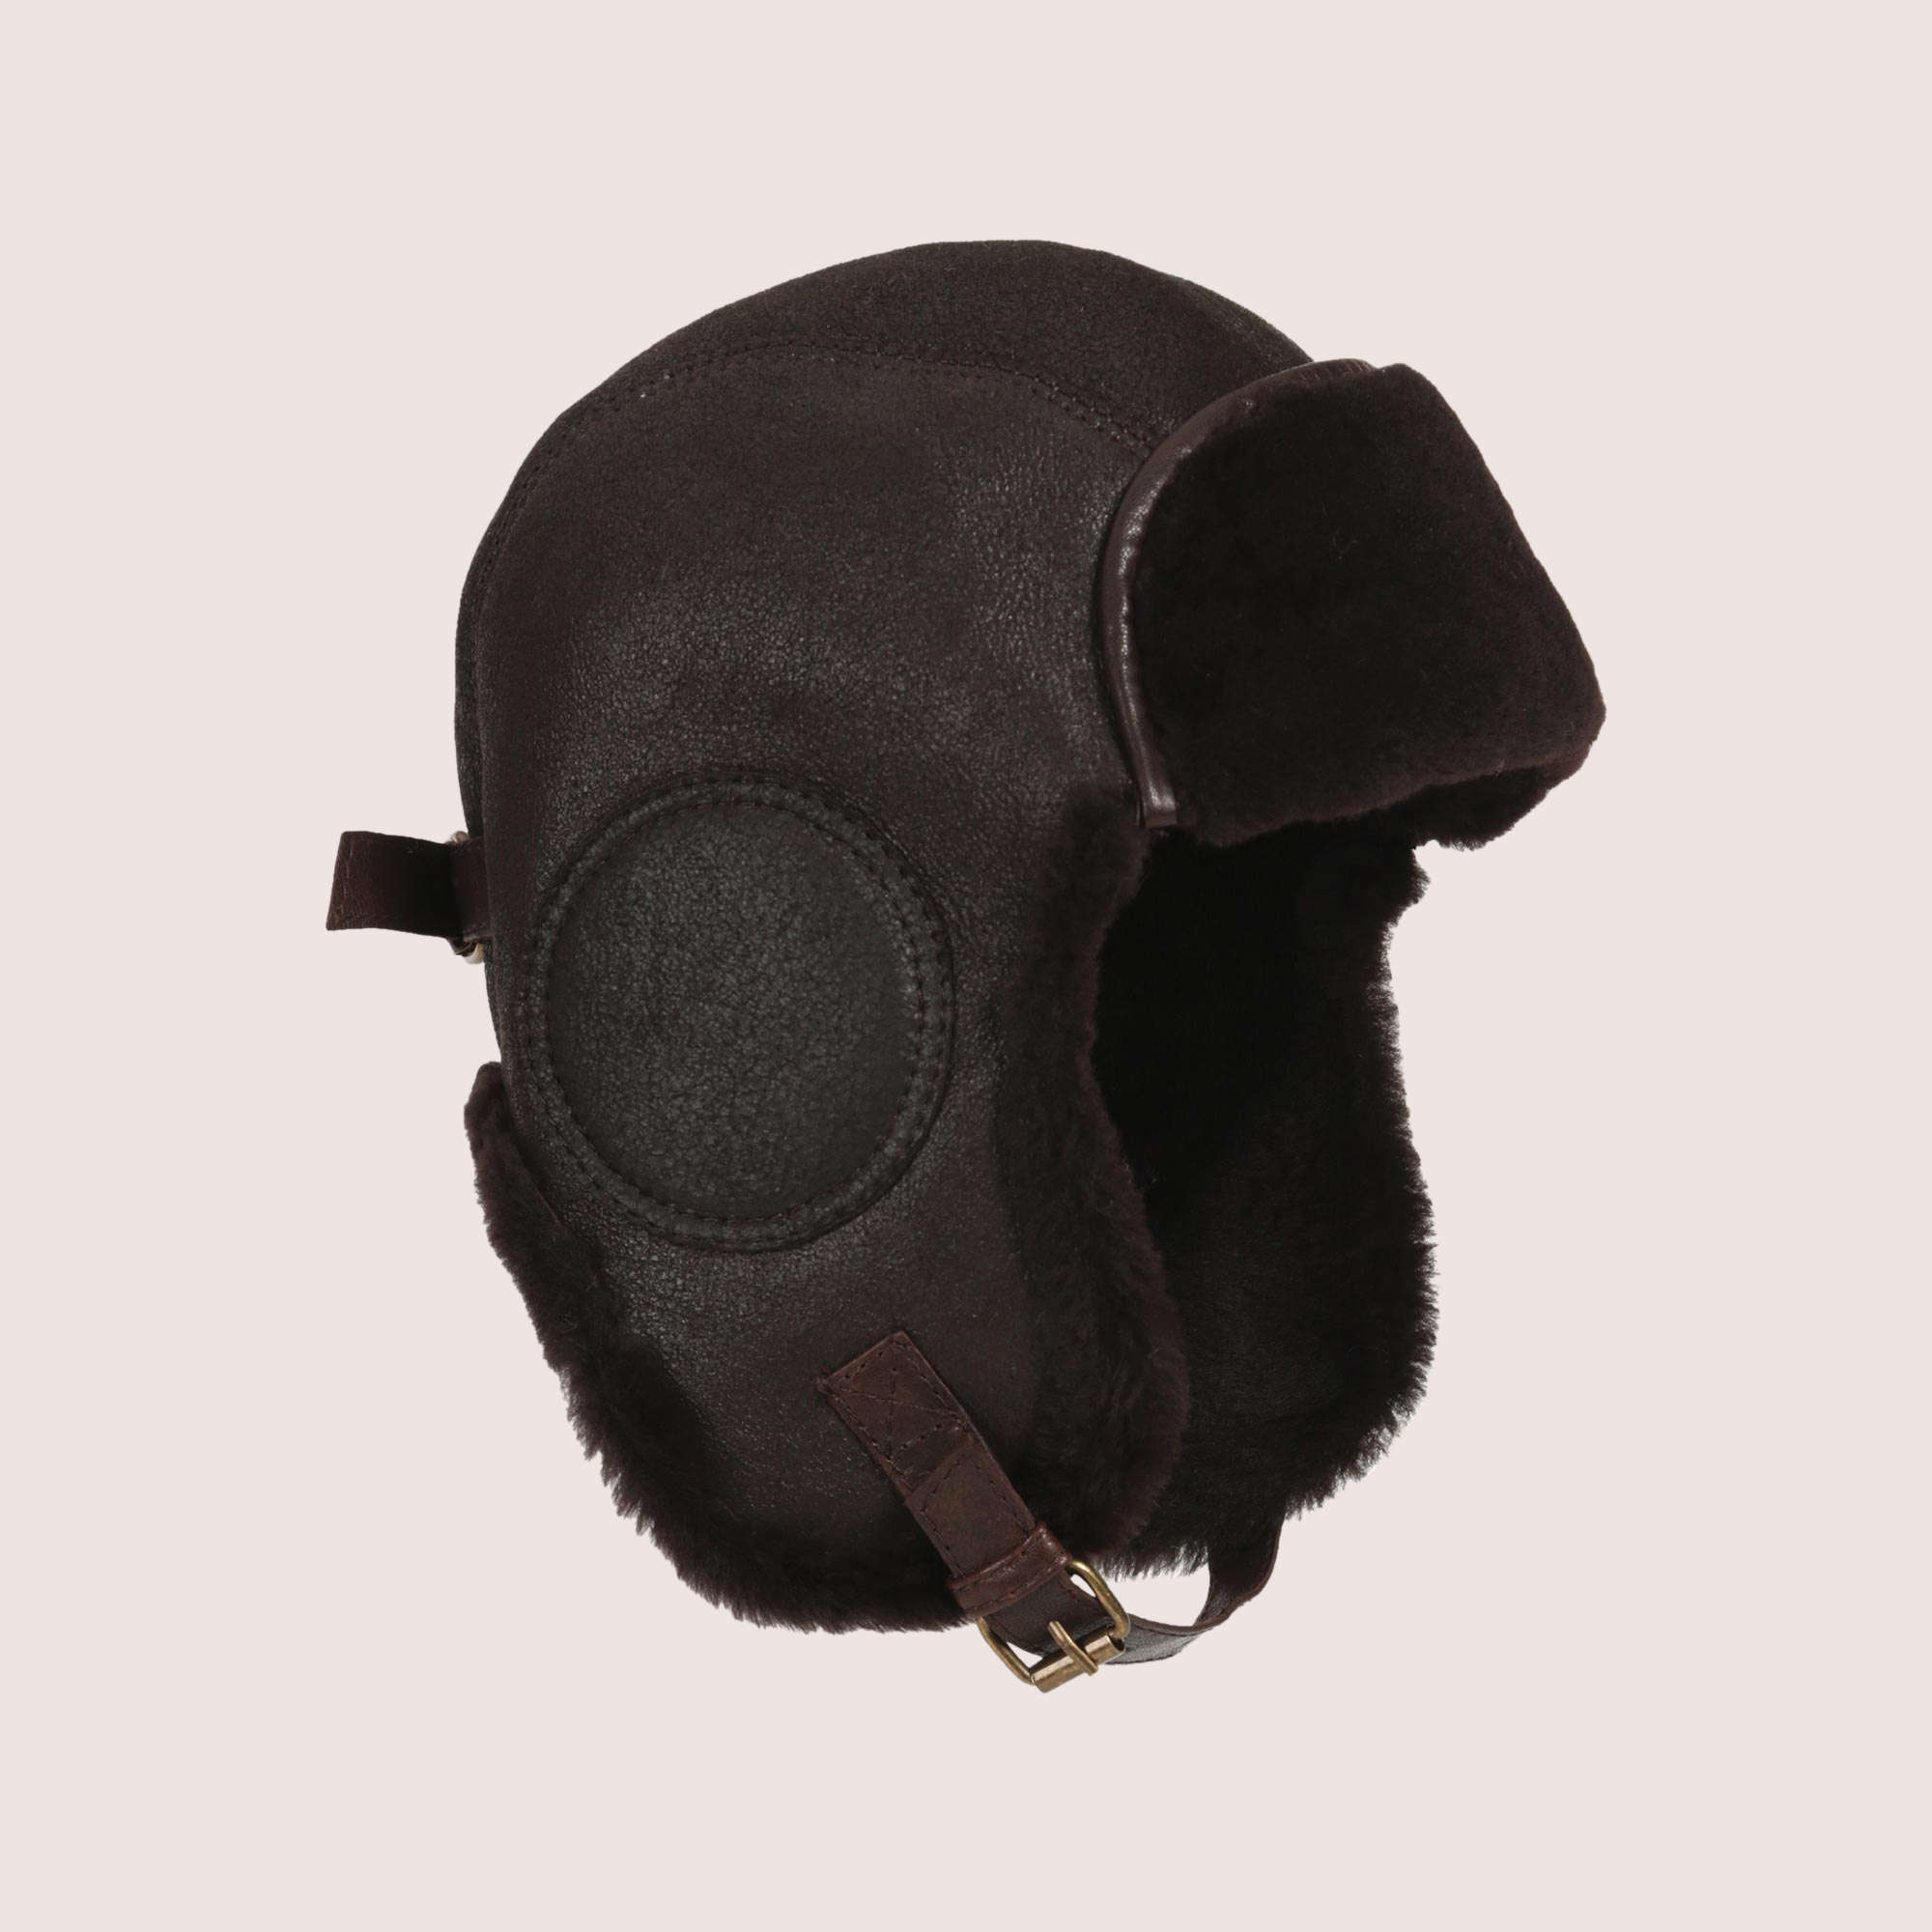 B-52 Aviator's Sheepskin Hat